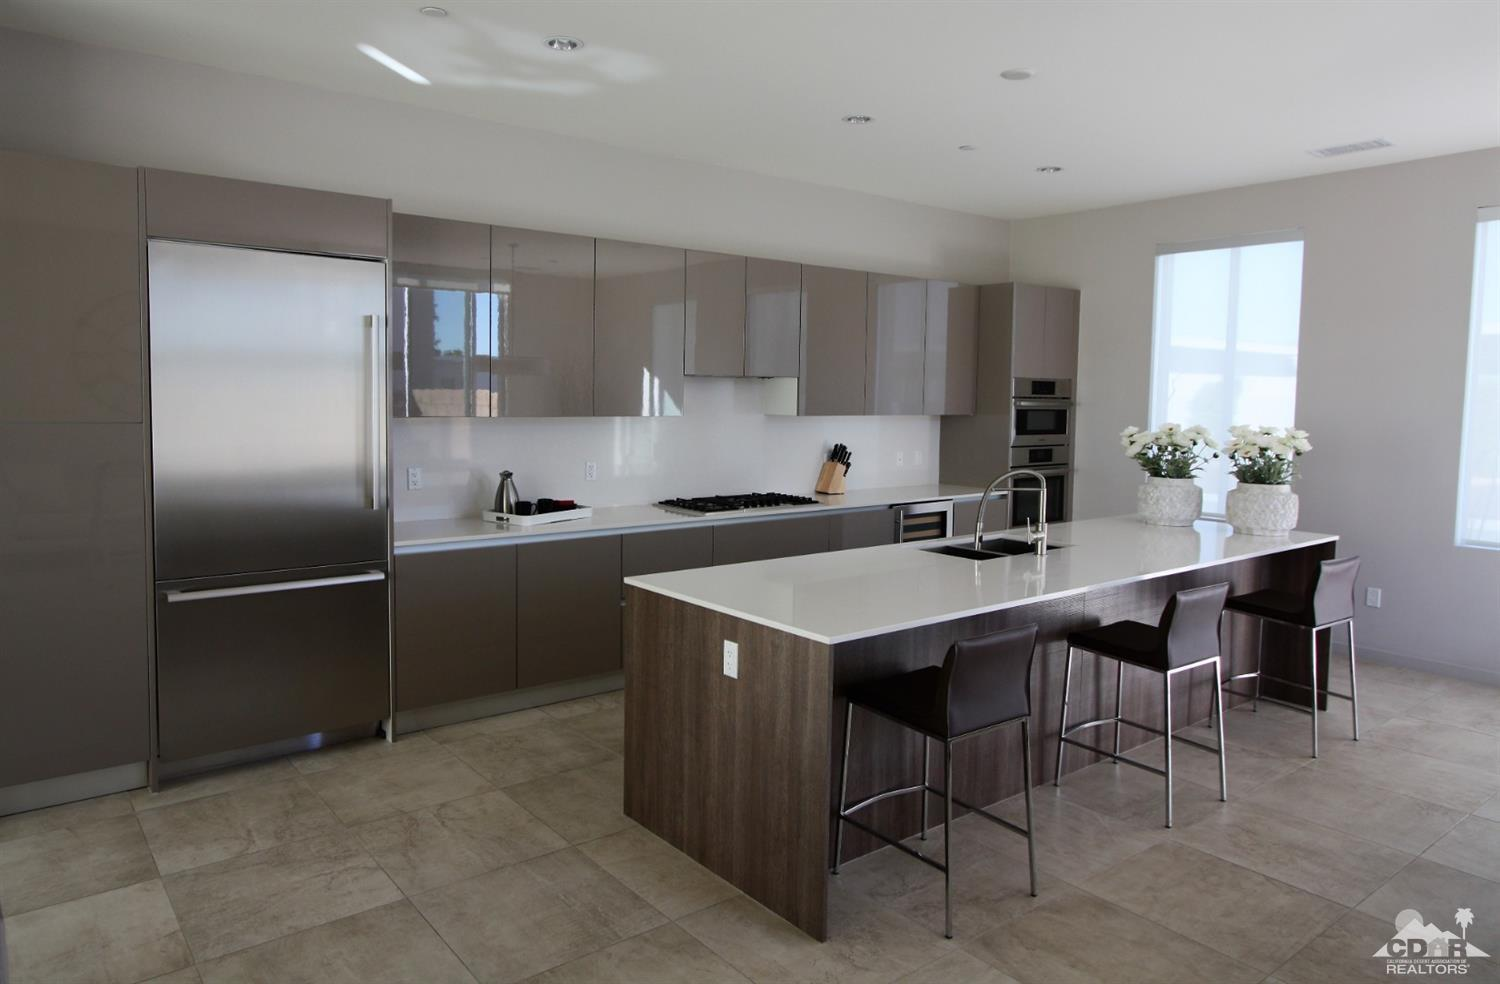 635 Cache Lane, Palm Springs, California 92262, 3 Bedrooms Bedrooms, ,3 BathroomsBathrooms,Residential,Sold,635 Cache Lane,219014783